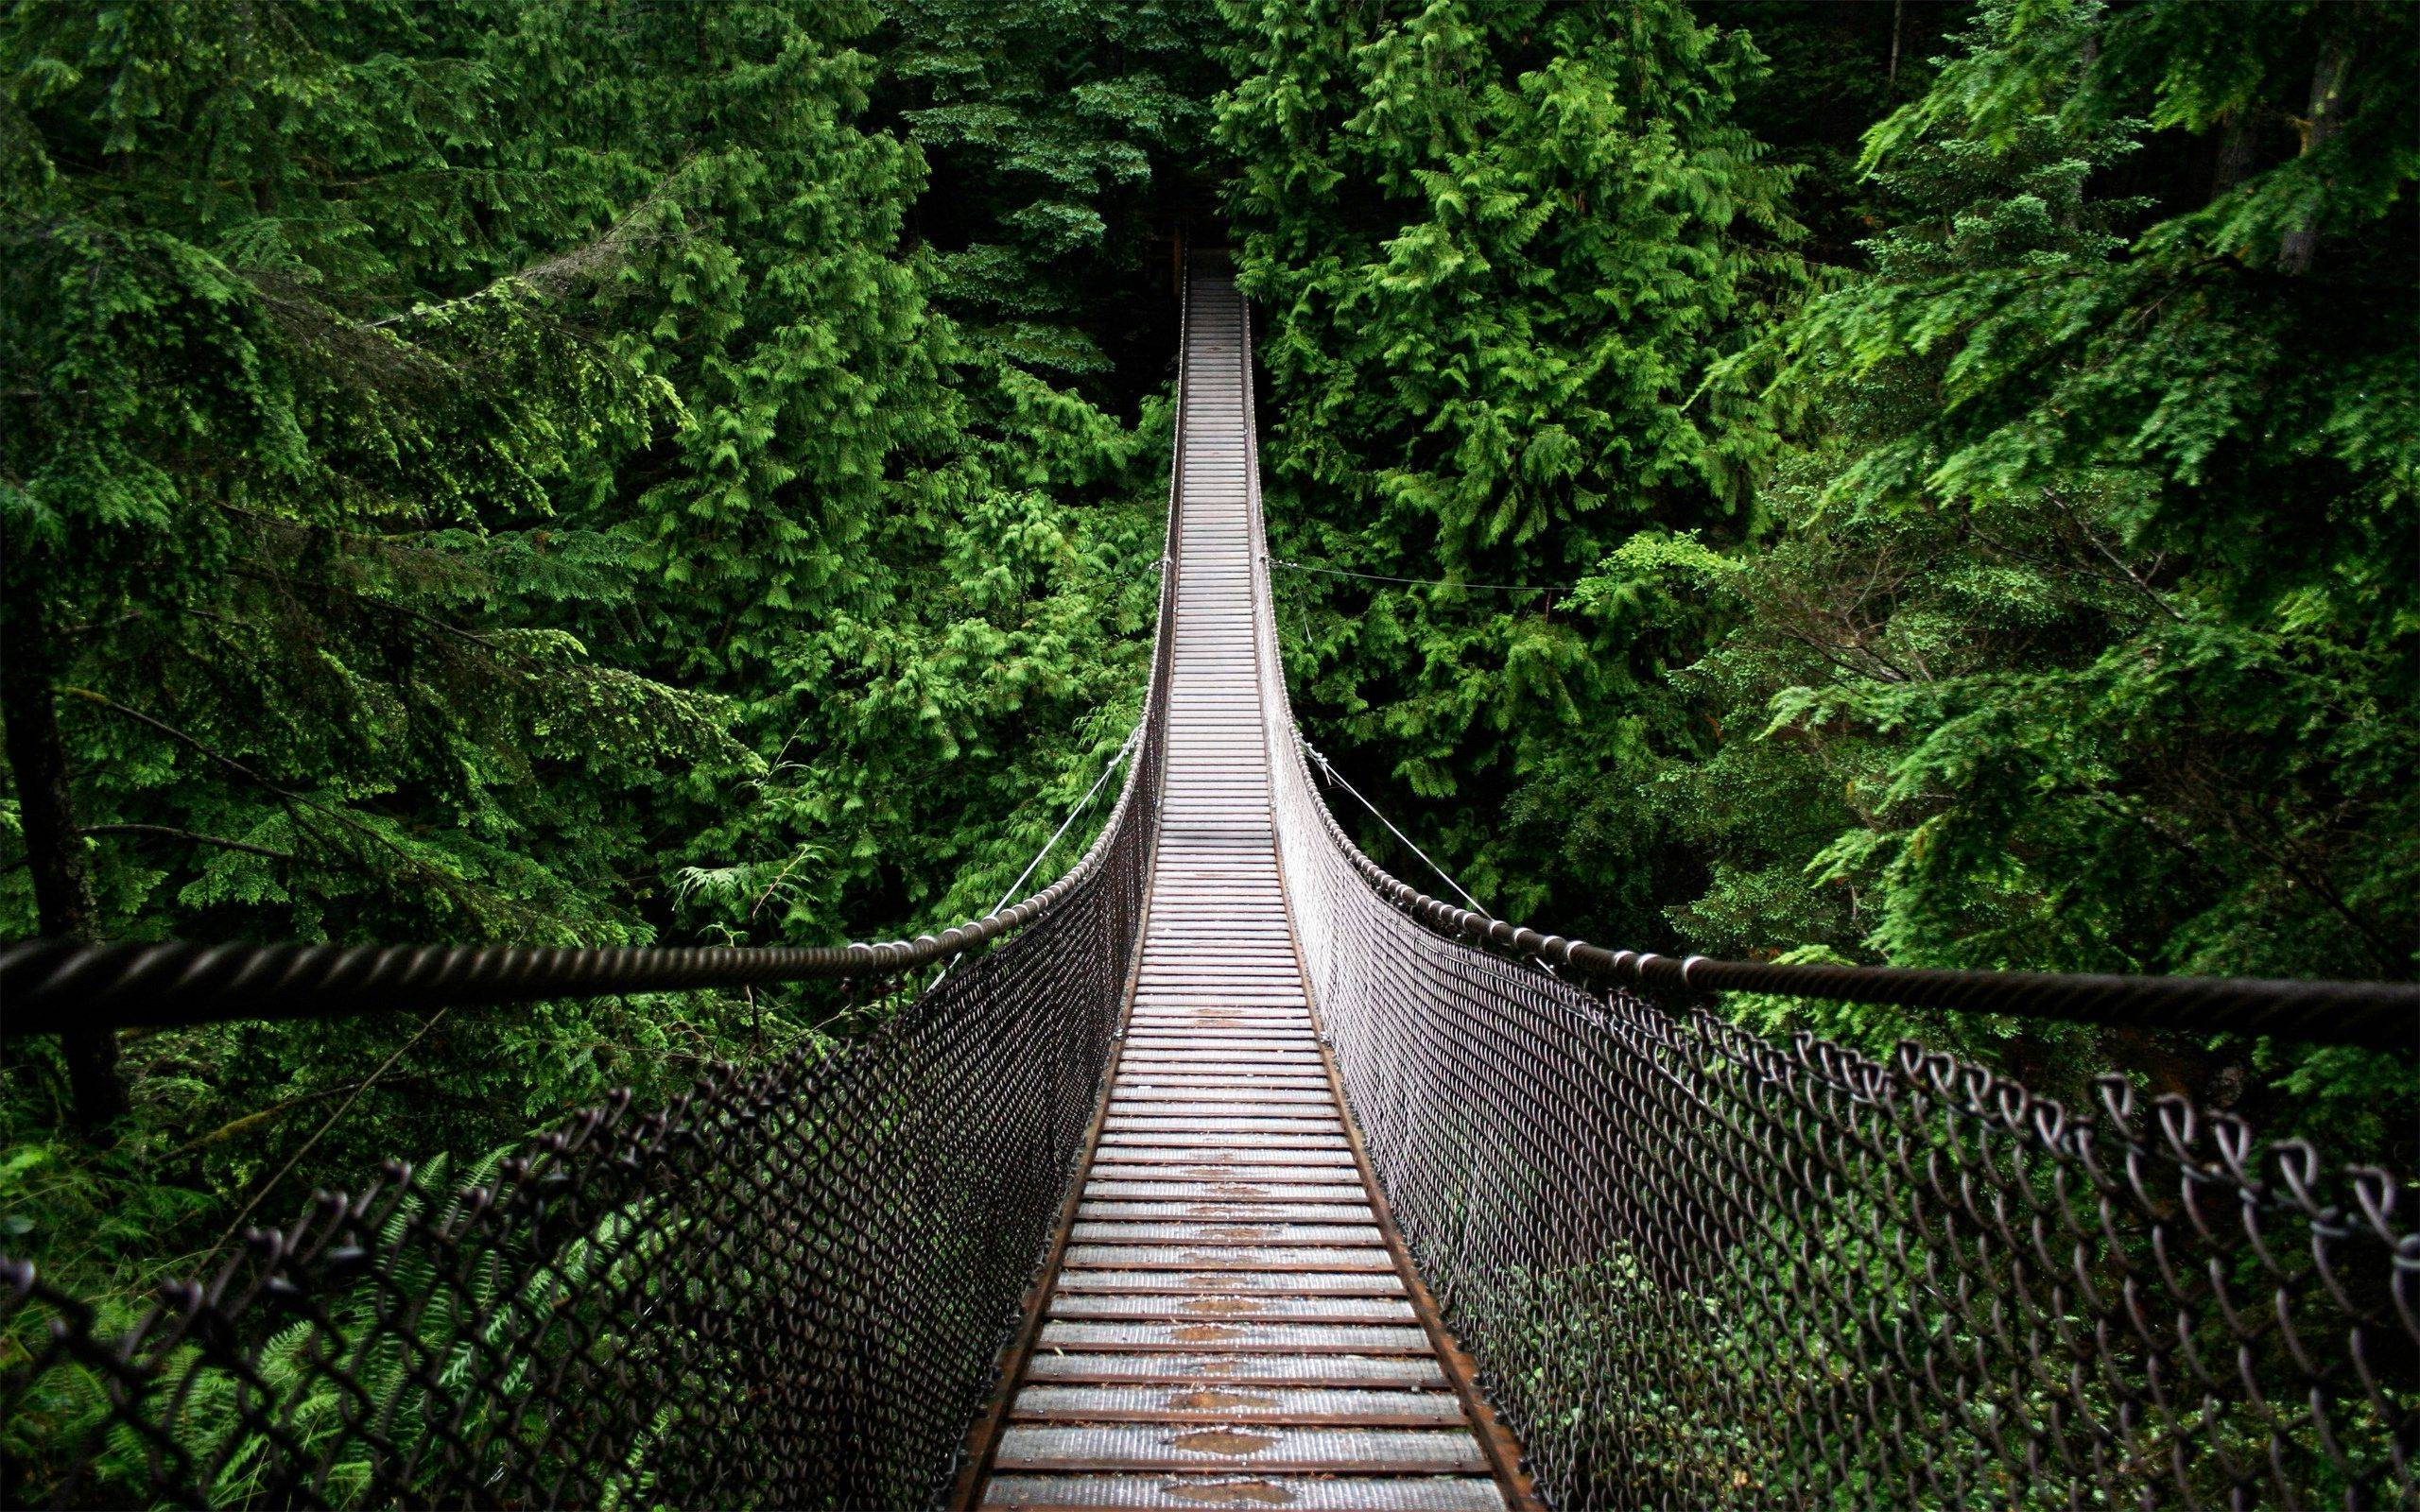 Hanged Bridge in the Jungle Wallpapers and Stock Photo